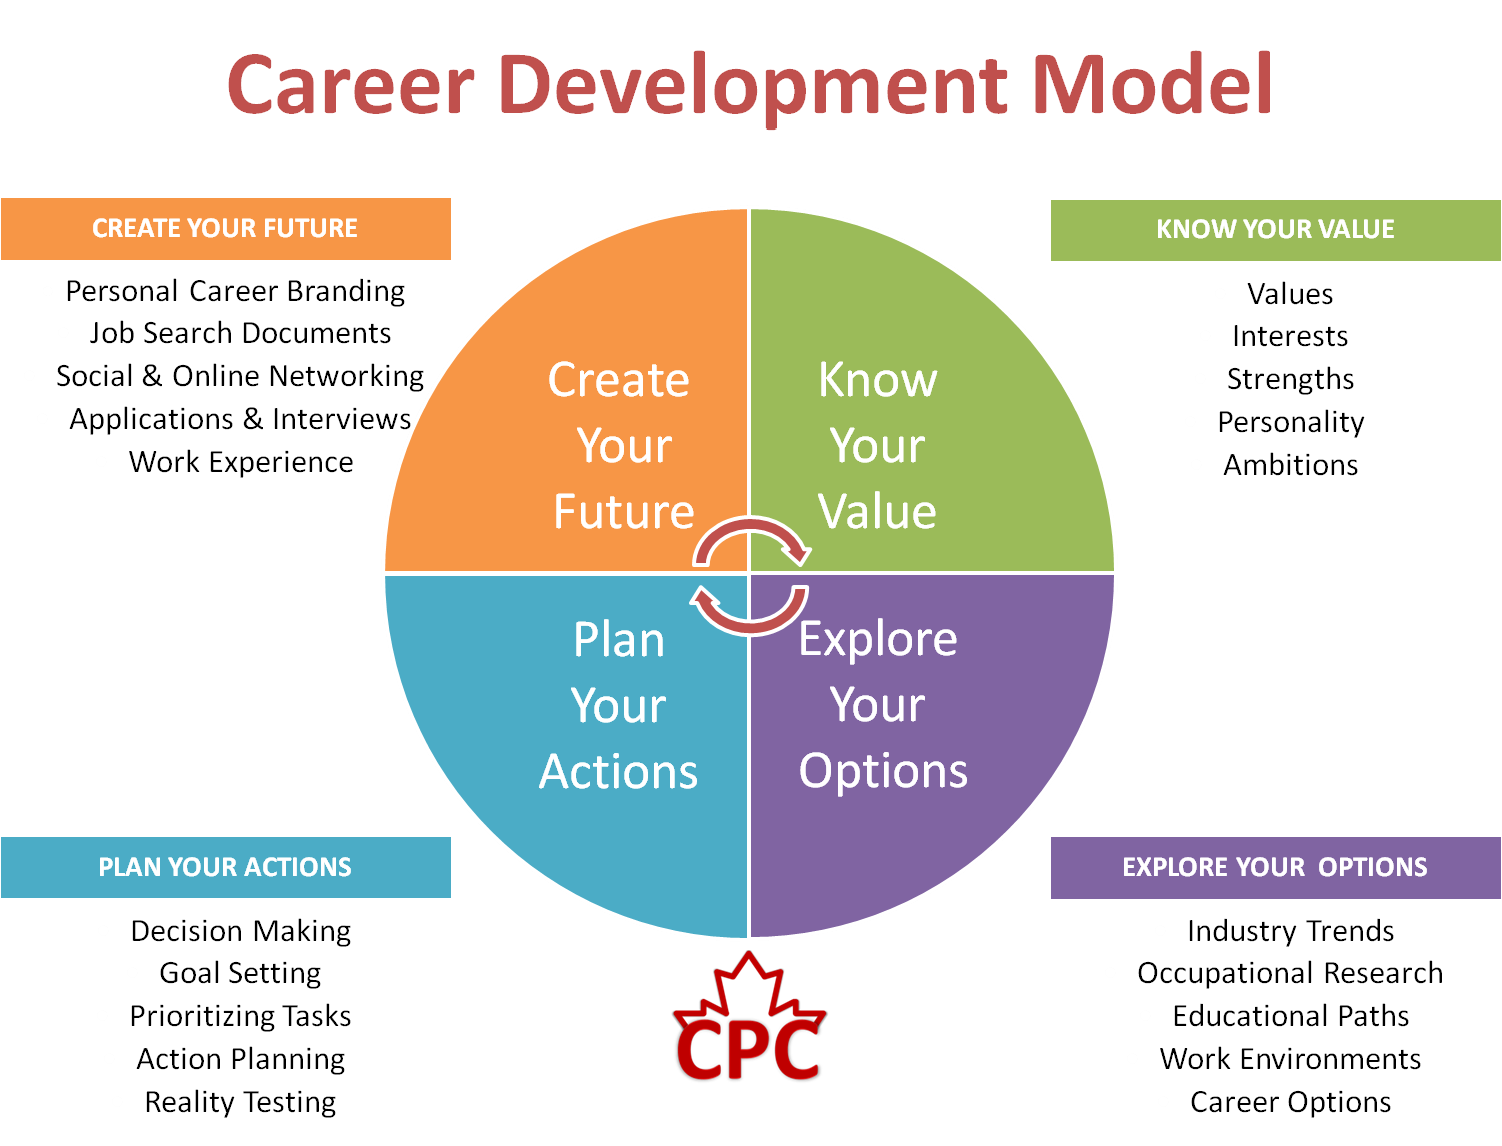 17 best ideas about career planning career advice career development model dodgen co careerguidance dodgenco